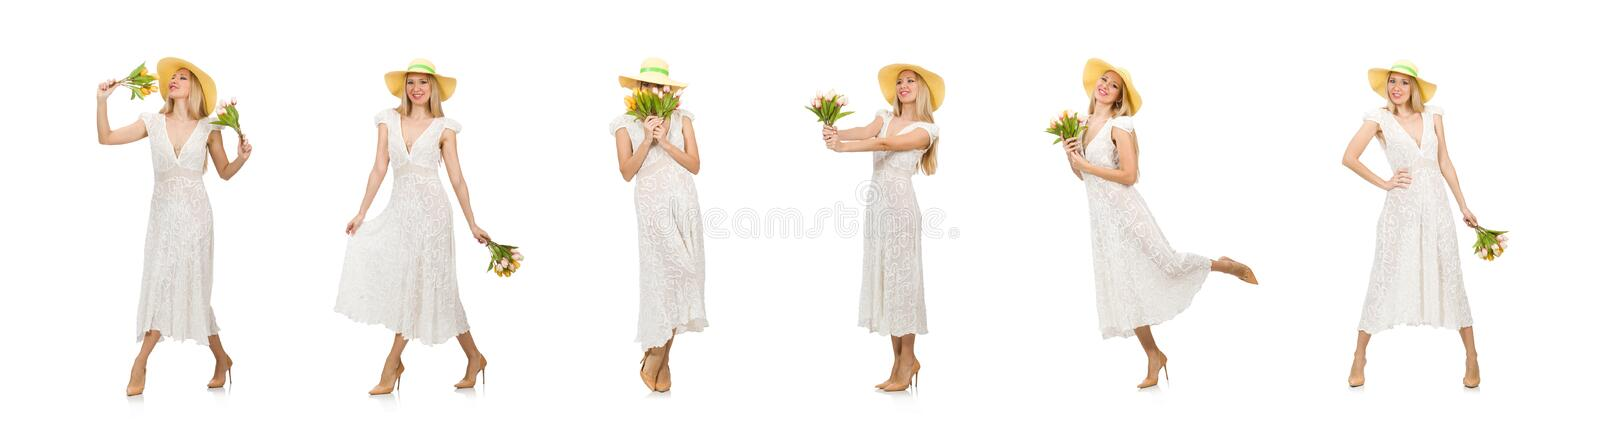 Woman in dress in fashion dress isolated on white royalty free stock photo